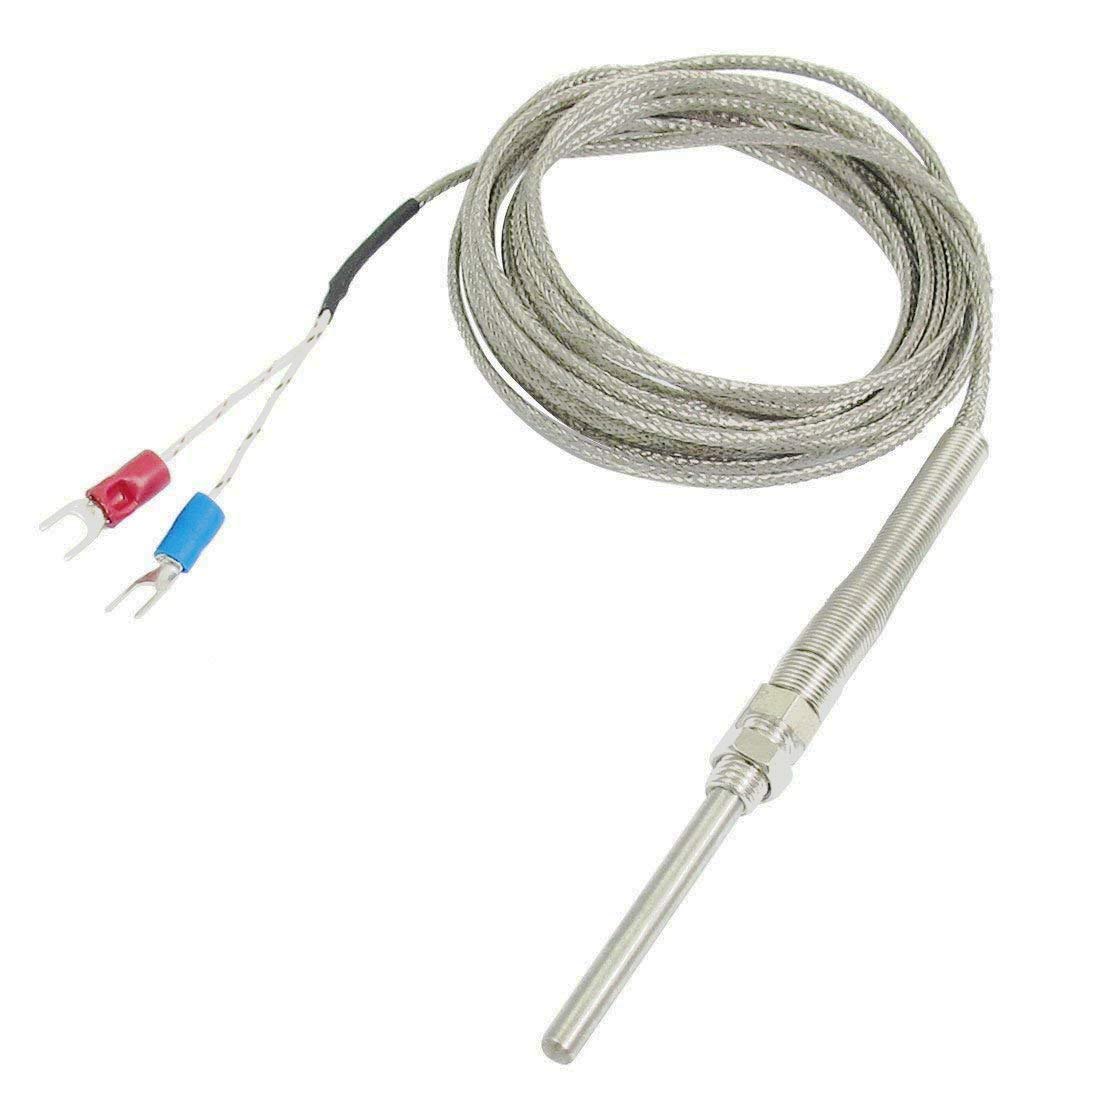 Aodesy 5M//16.4ft Long K Type 500C 50mm//1.97 Probe Thermocouple Temperature Controller Sensor Cable 5M x 50mm